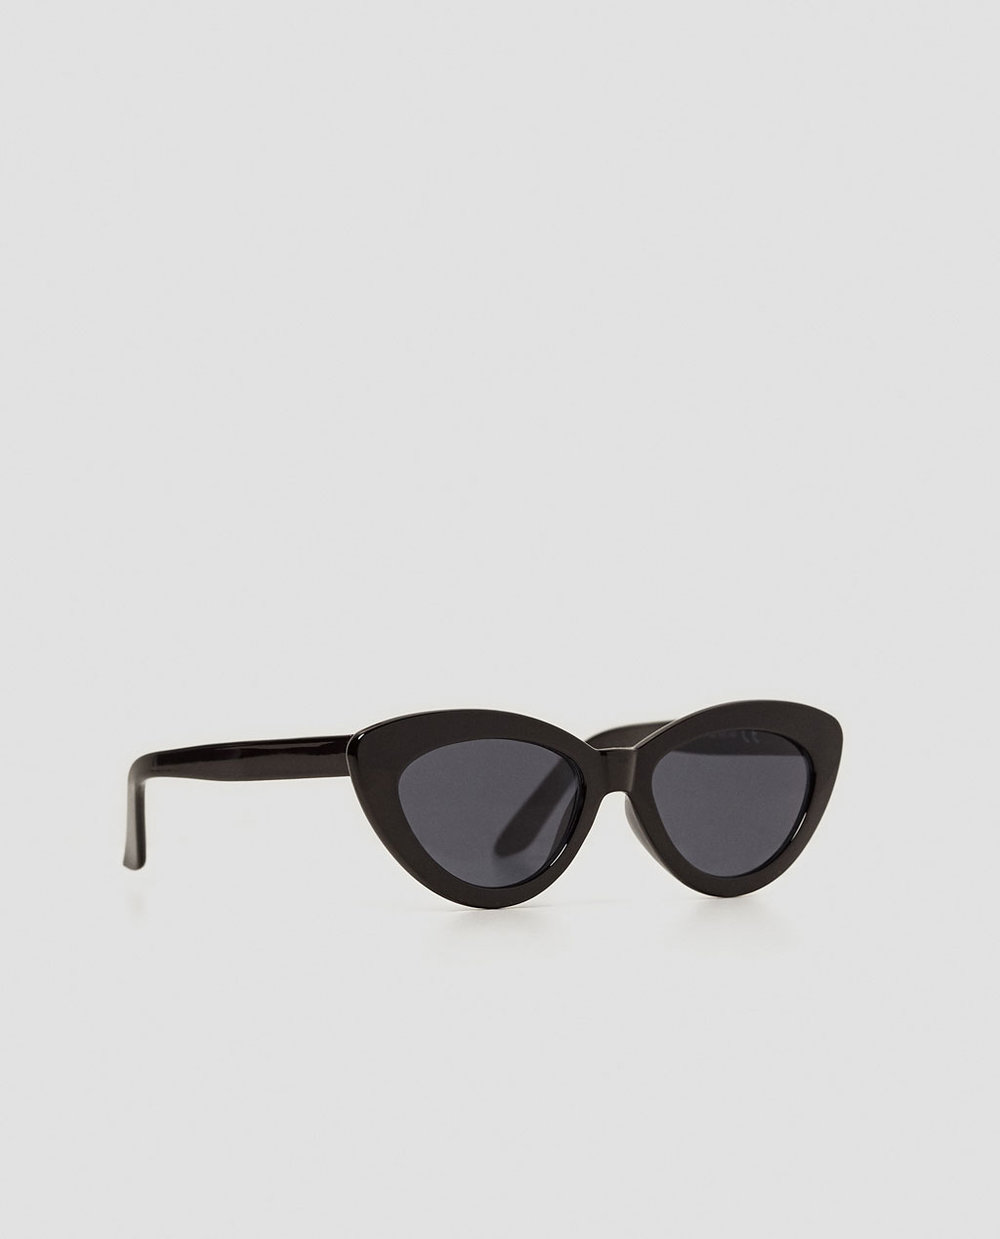 cateye sunglasses $22